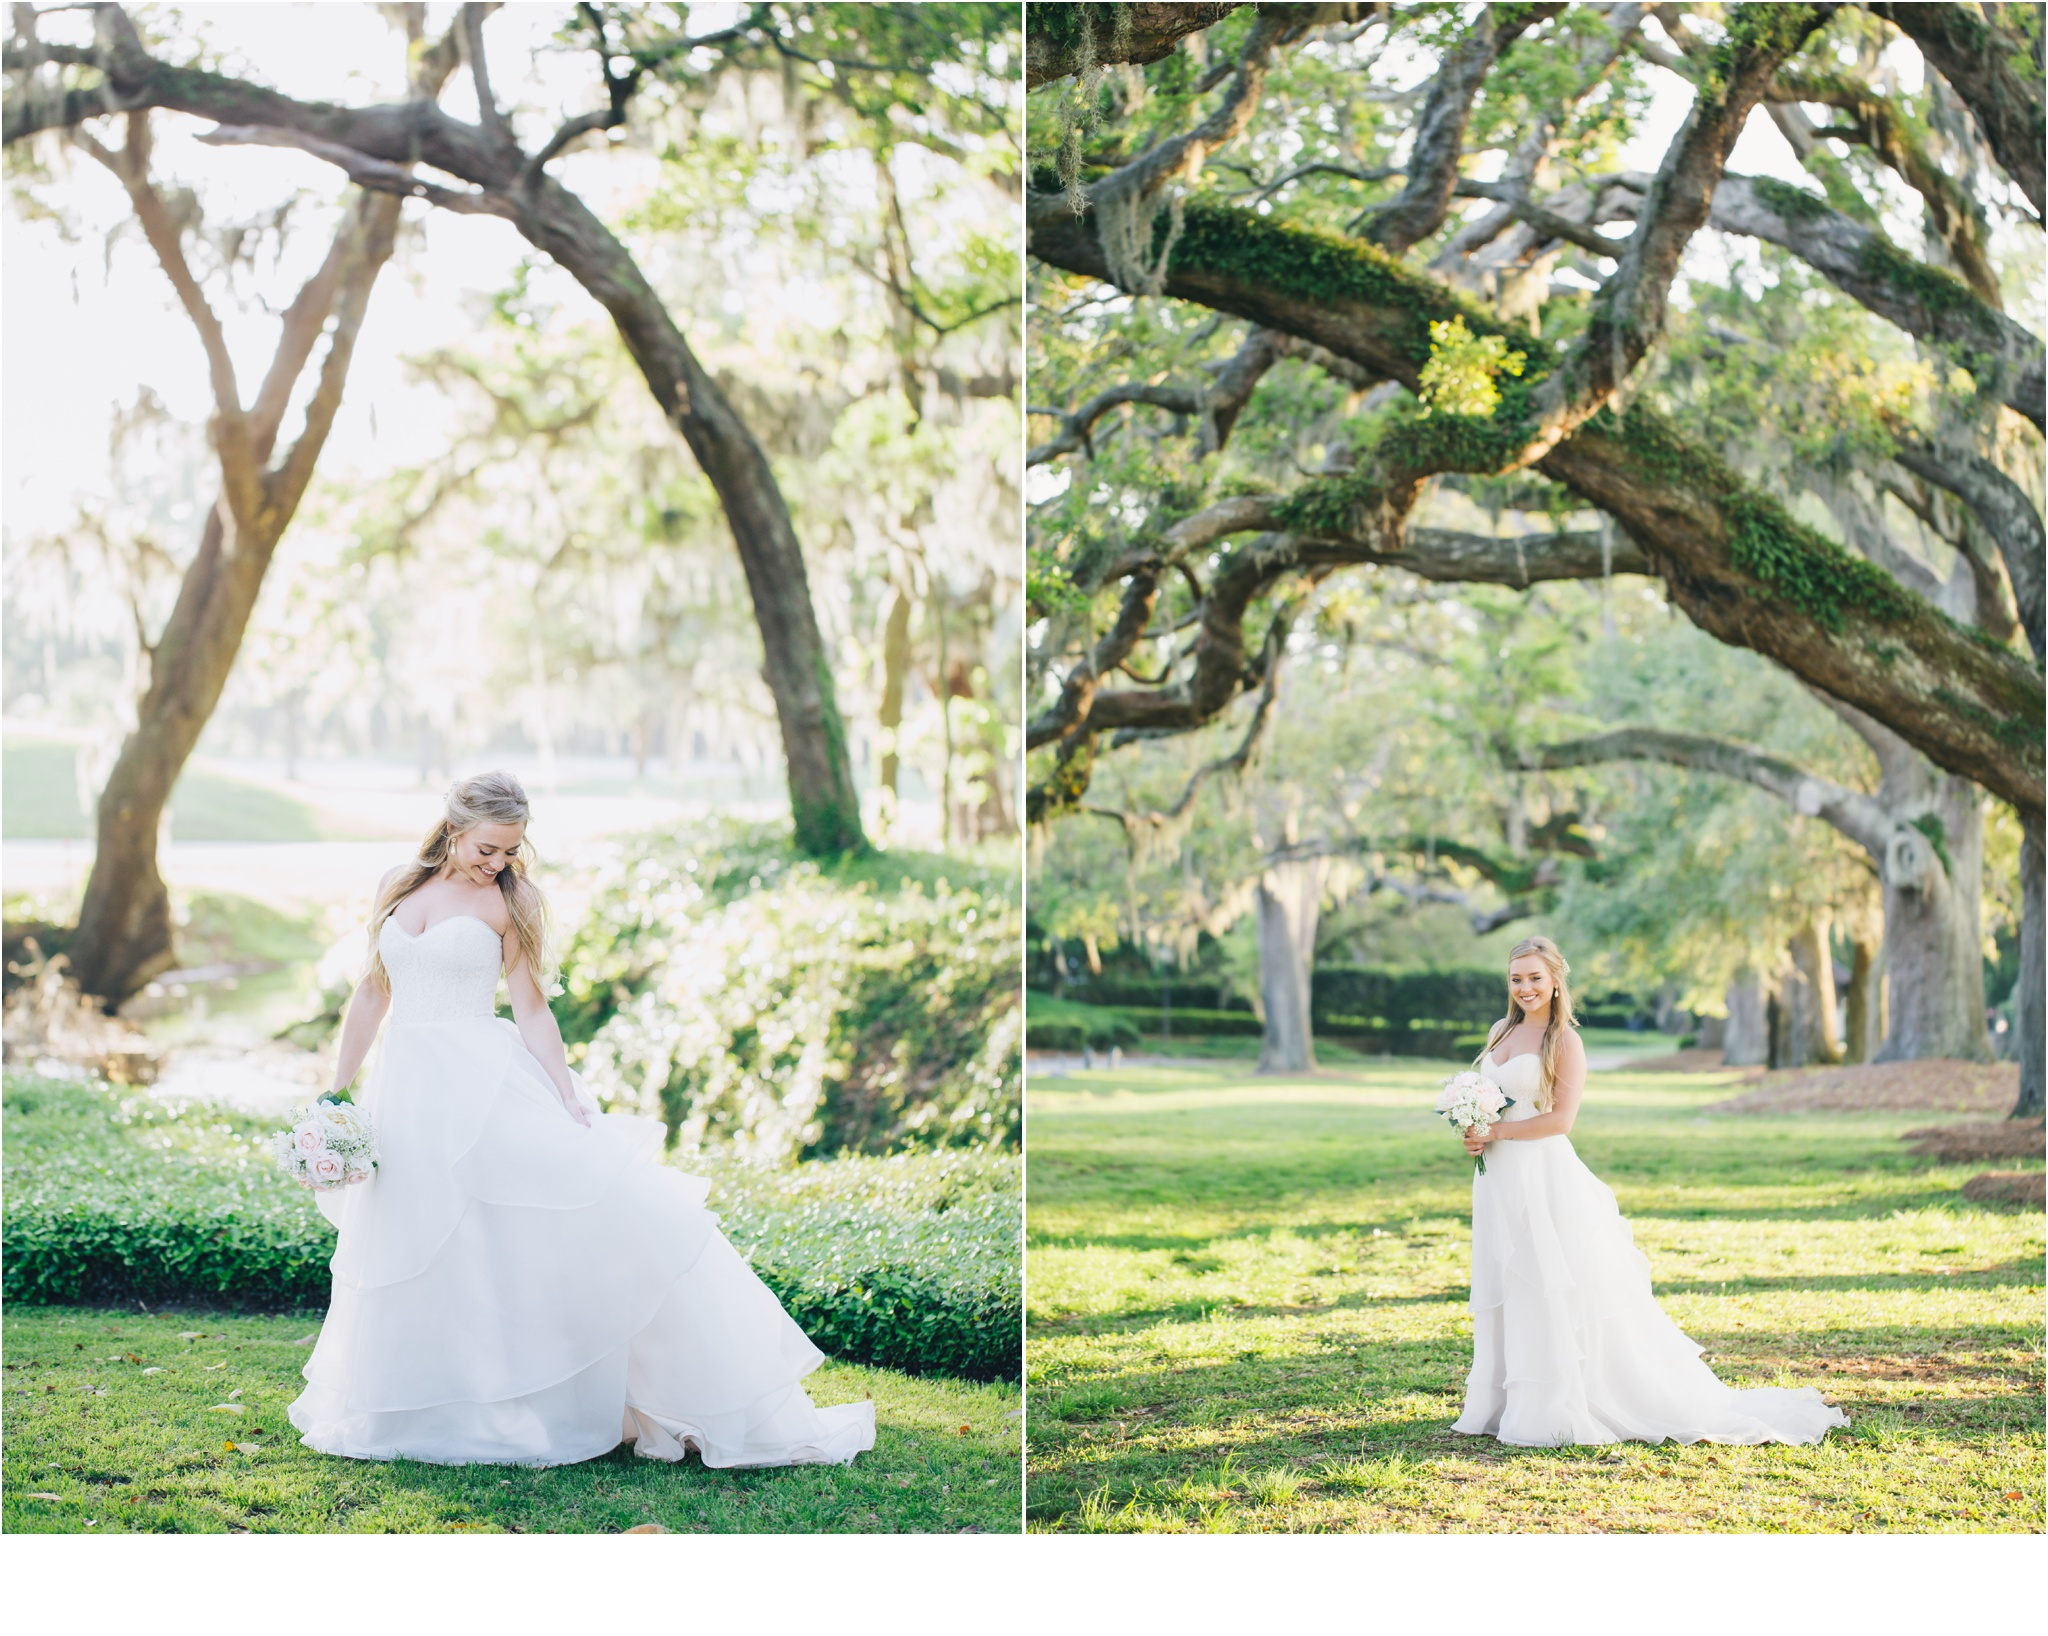 Rainey_Gregg_Photography_St._Simons_Island_Georgia_California_Wedding_Portrait_Photography_1412.jpg